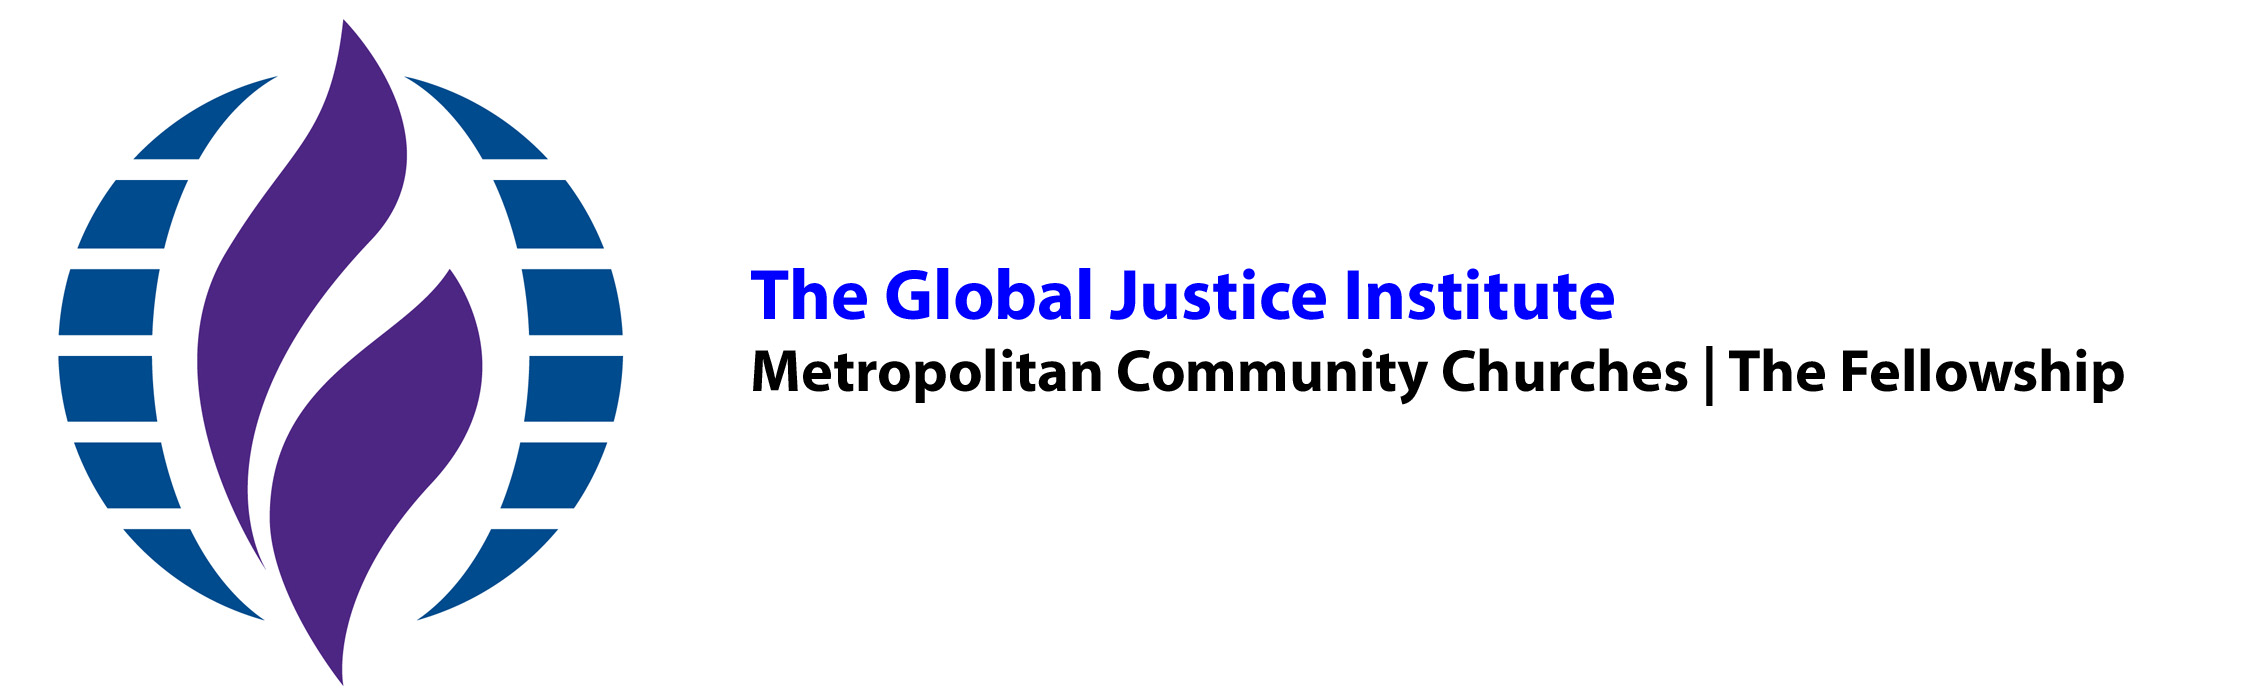 global justice Our annual global justice conference, onslaughts on the poor: corruption, emissions, violence took place october 27-29, 2017 at yale this public event was jointly organized by the global justice.